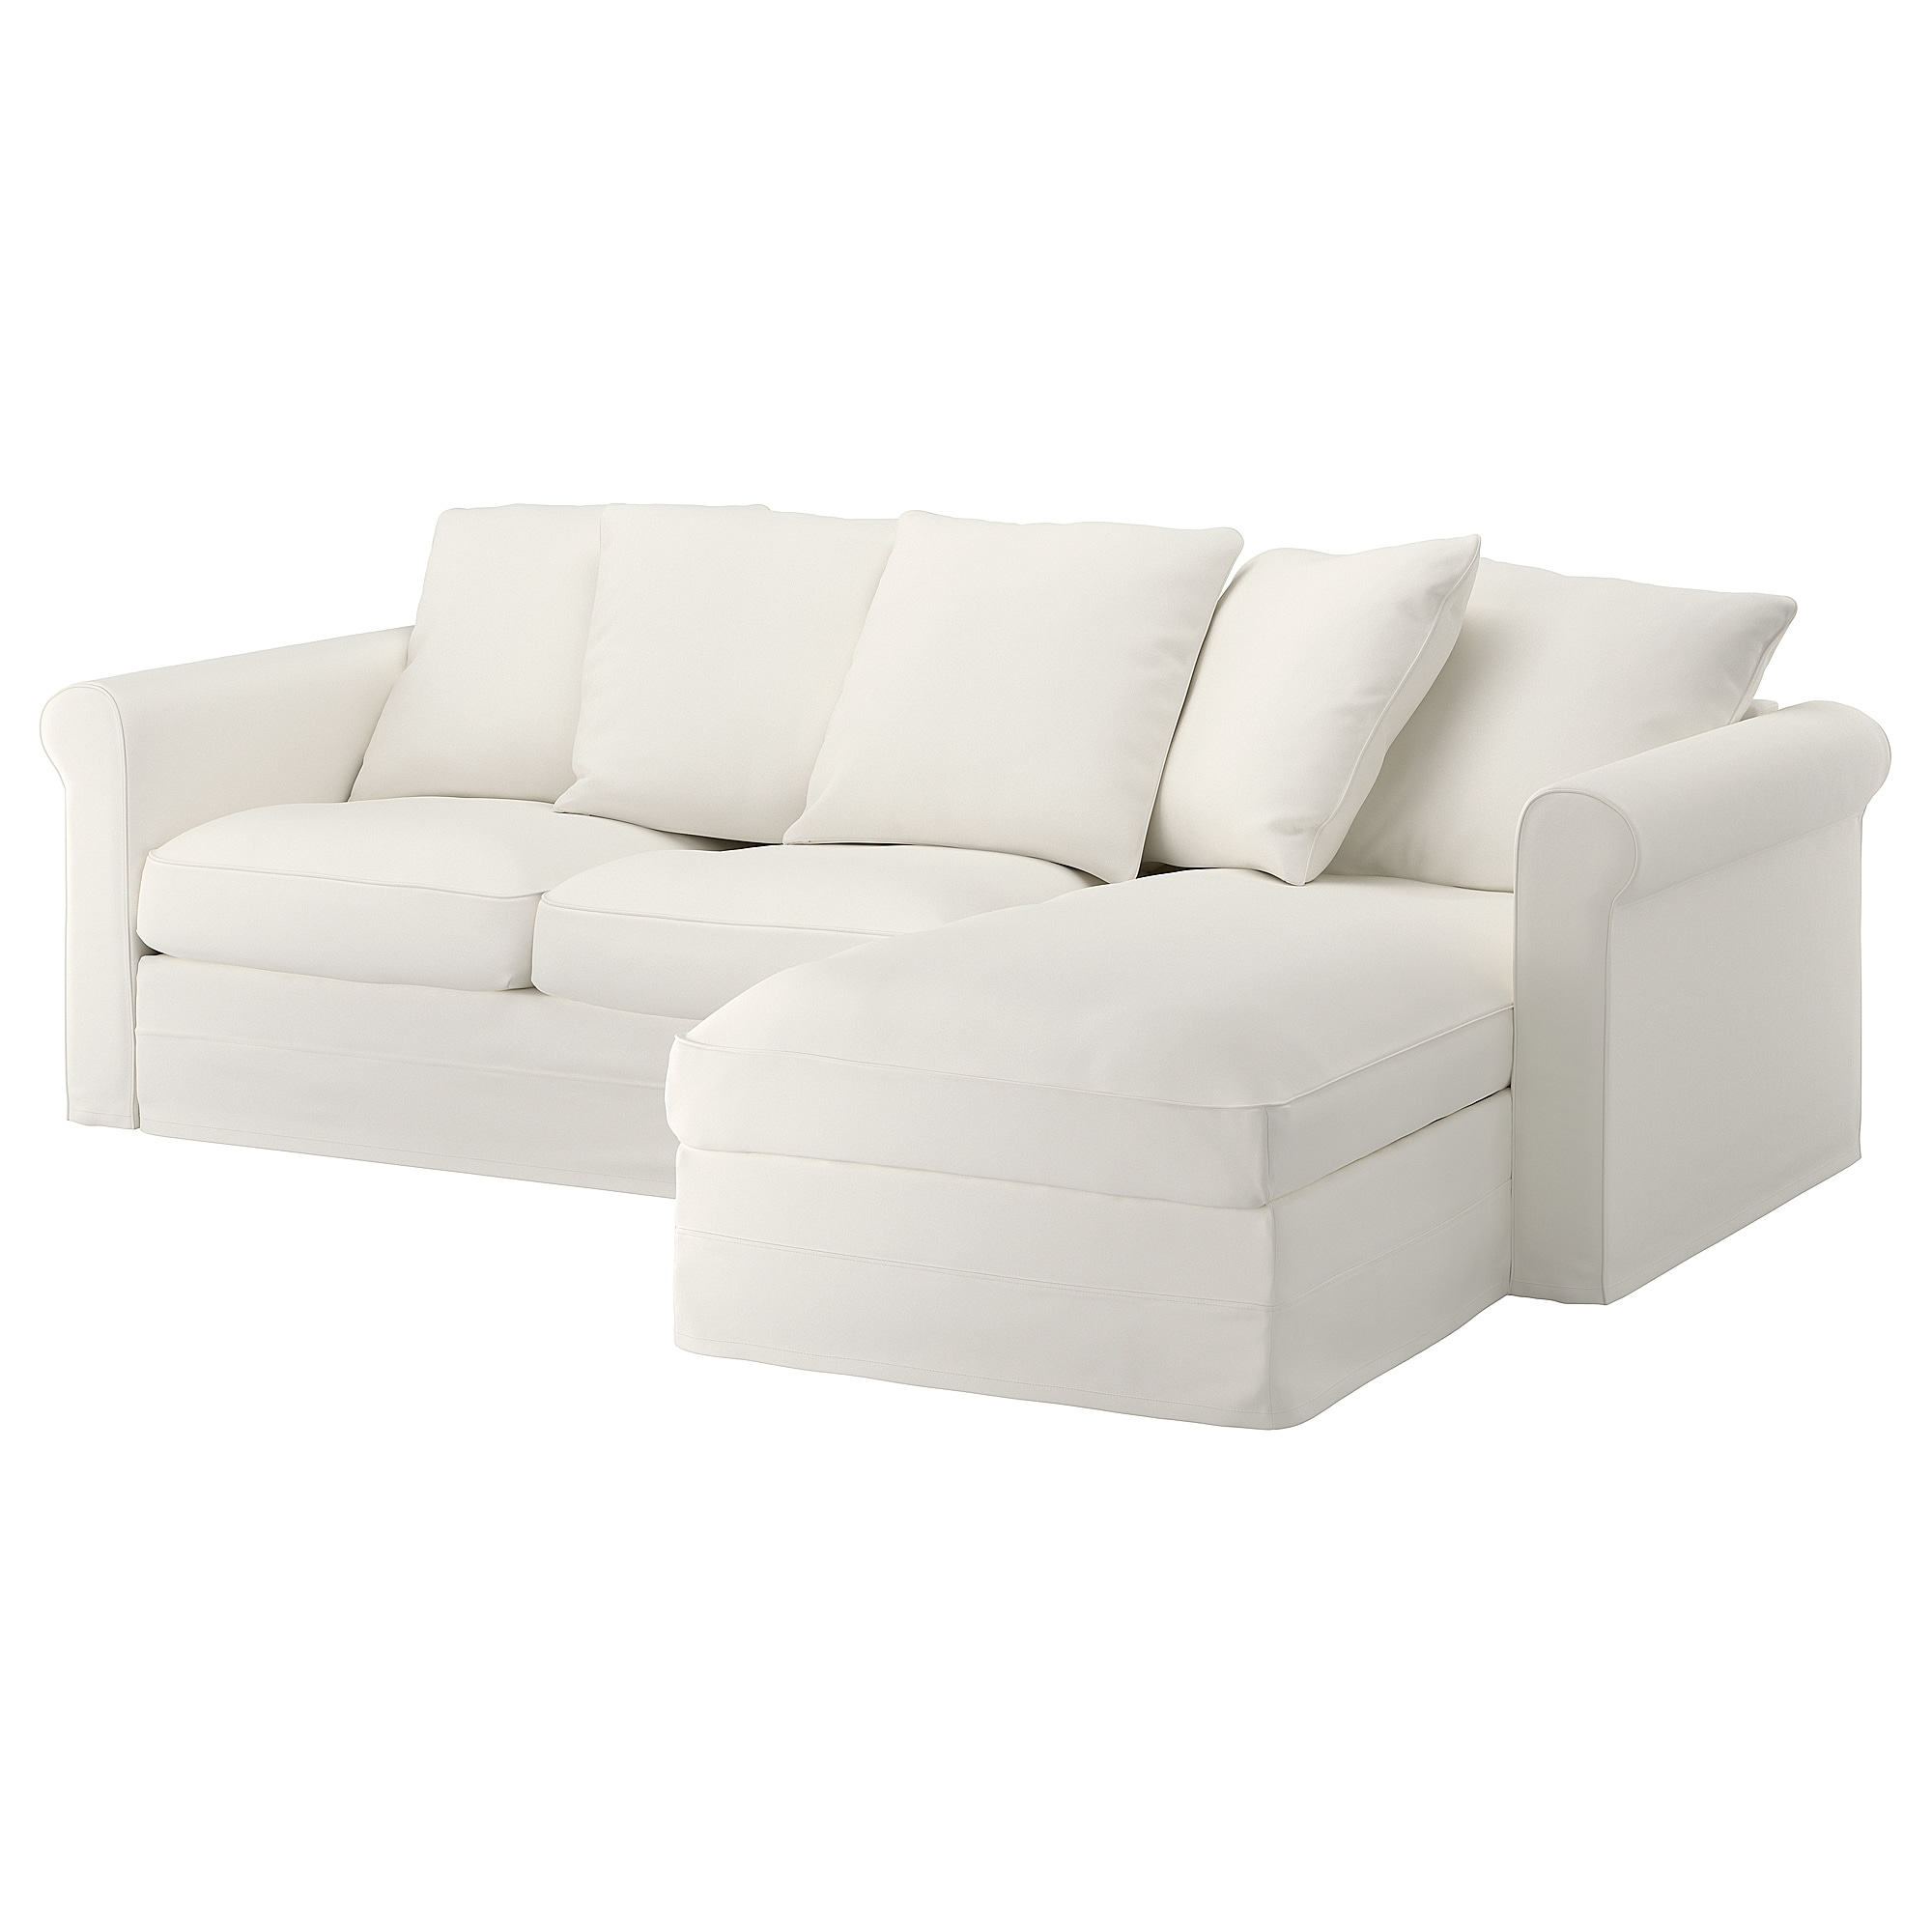 Ikea Bank Code Sofa GrÖnlid With Chaise Inseros White